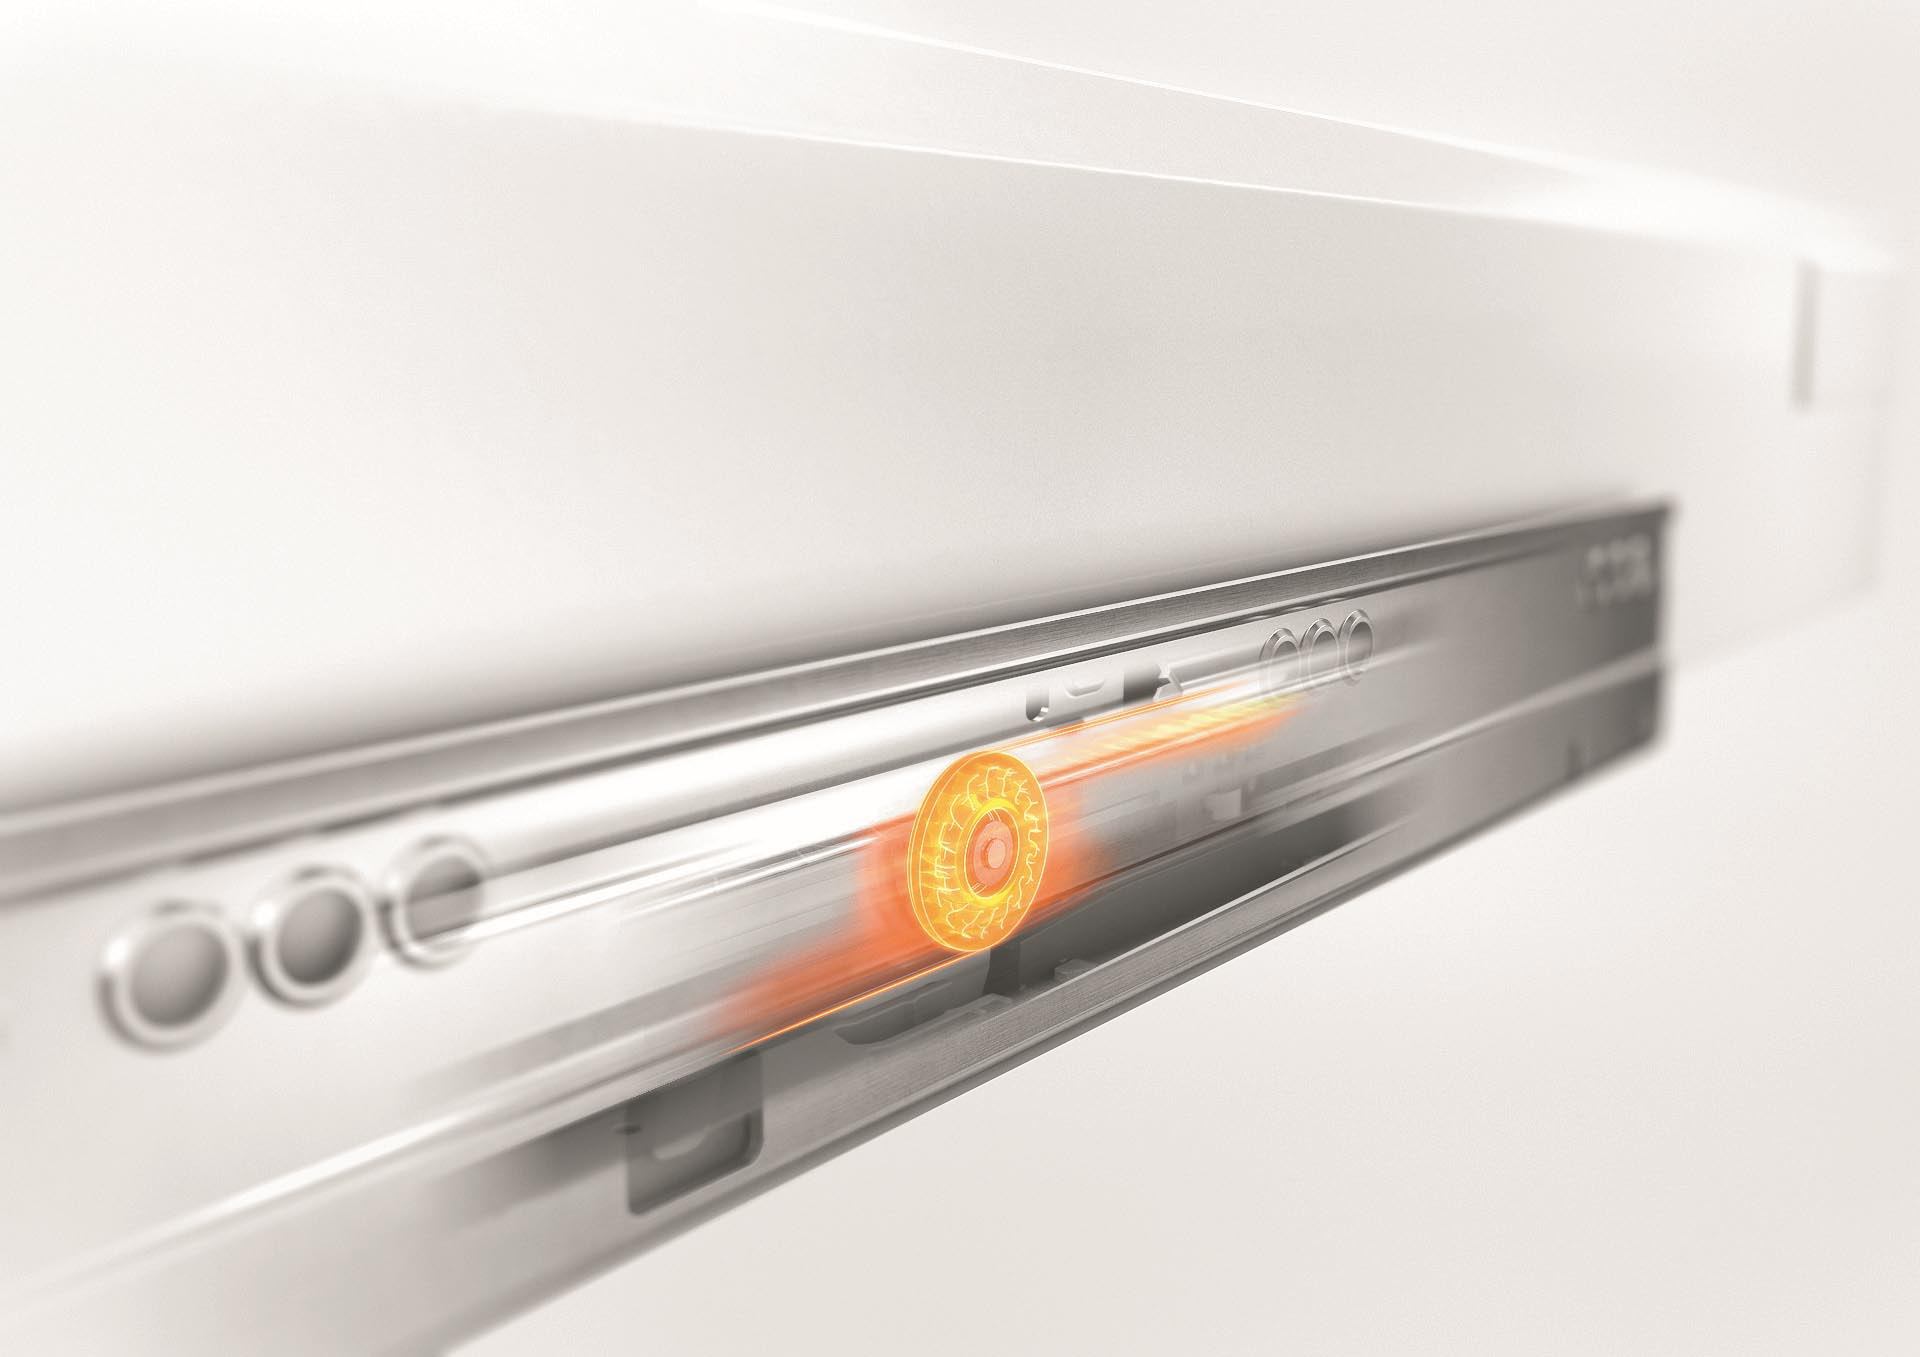 Blum Tandembox Performance Optimised The Kitchen And